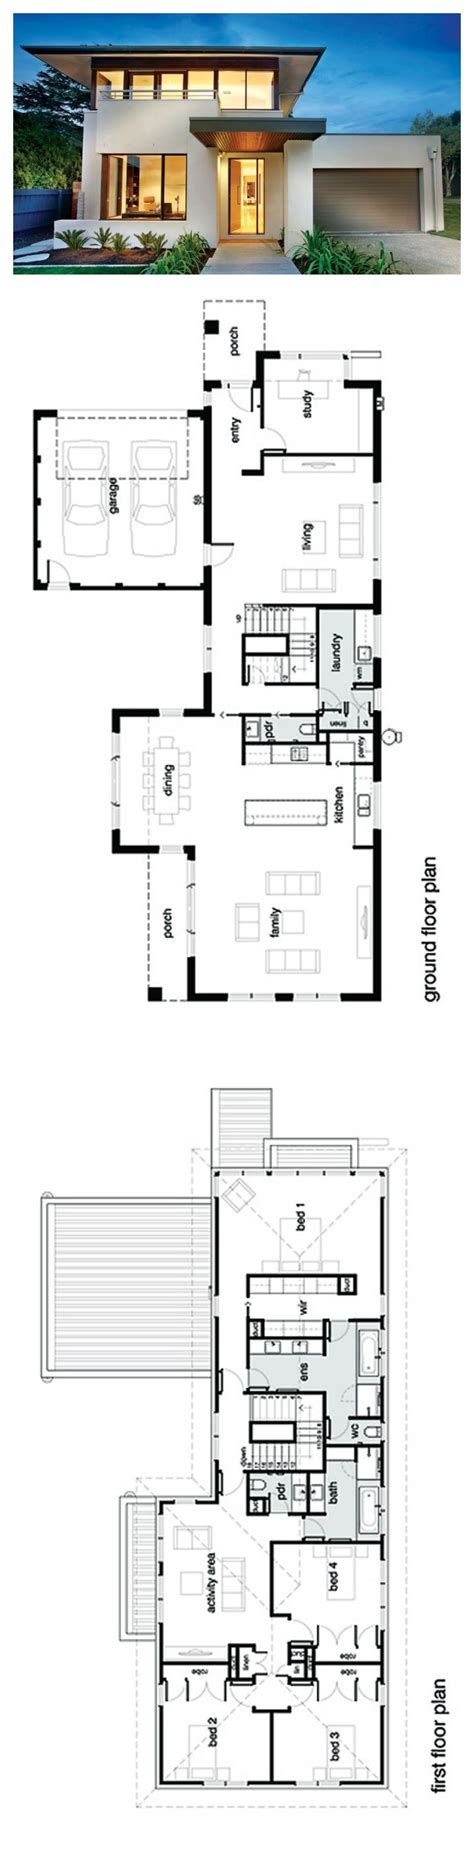 modern floor plans for houses best 25 modern house plans ideas on pinterest